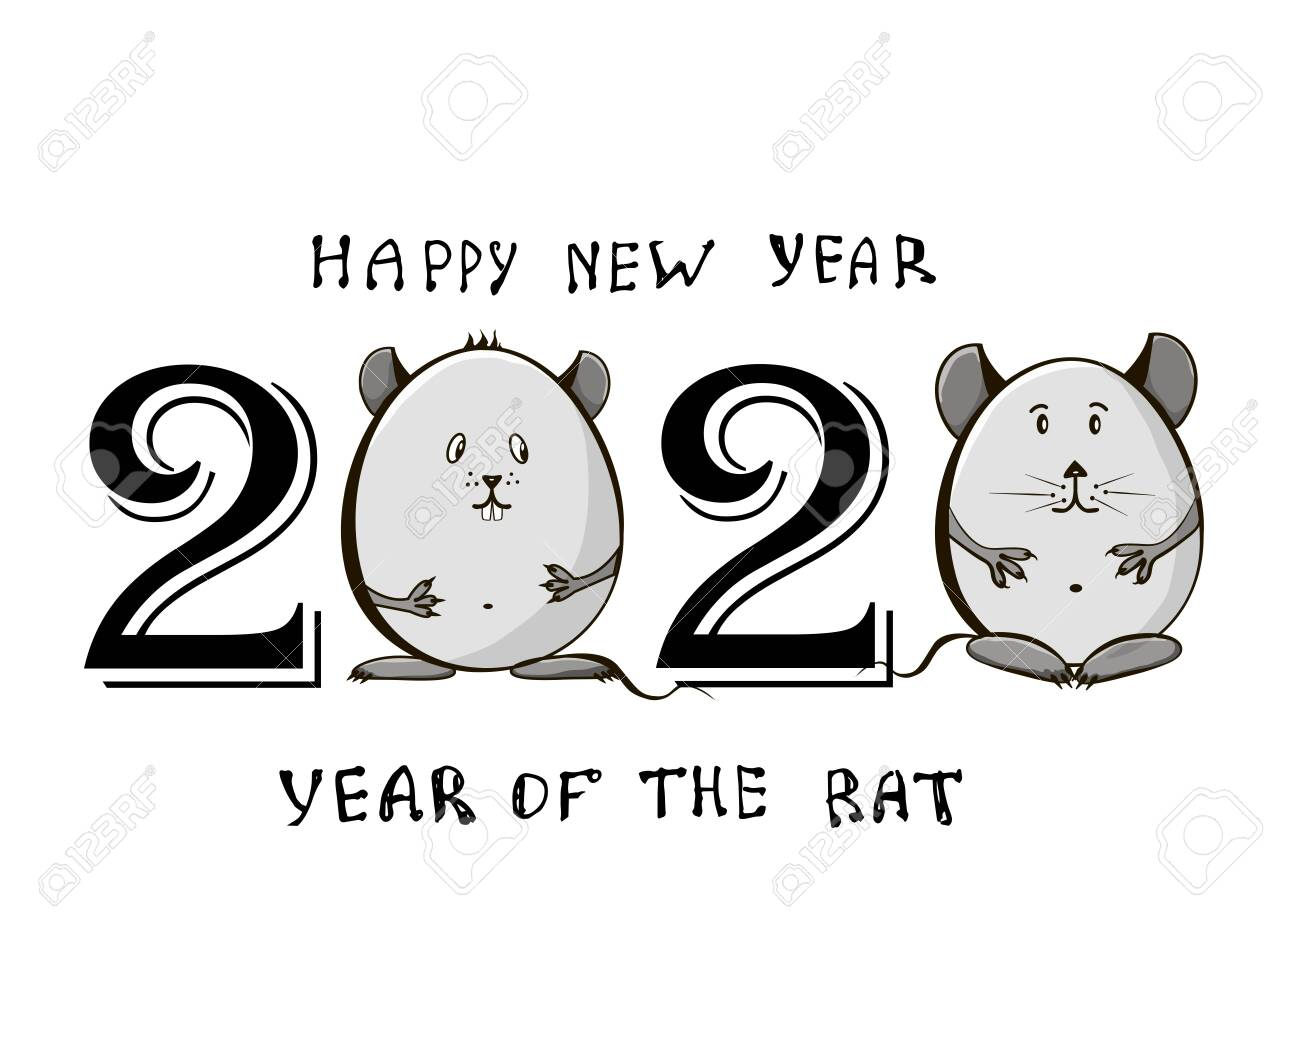 2020 Chinese New Year Date.Cute Little Rats With The Date 2020 Chinese New Year Of The